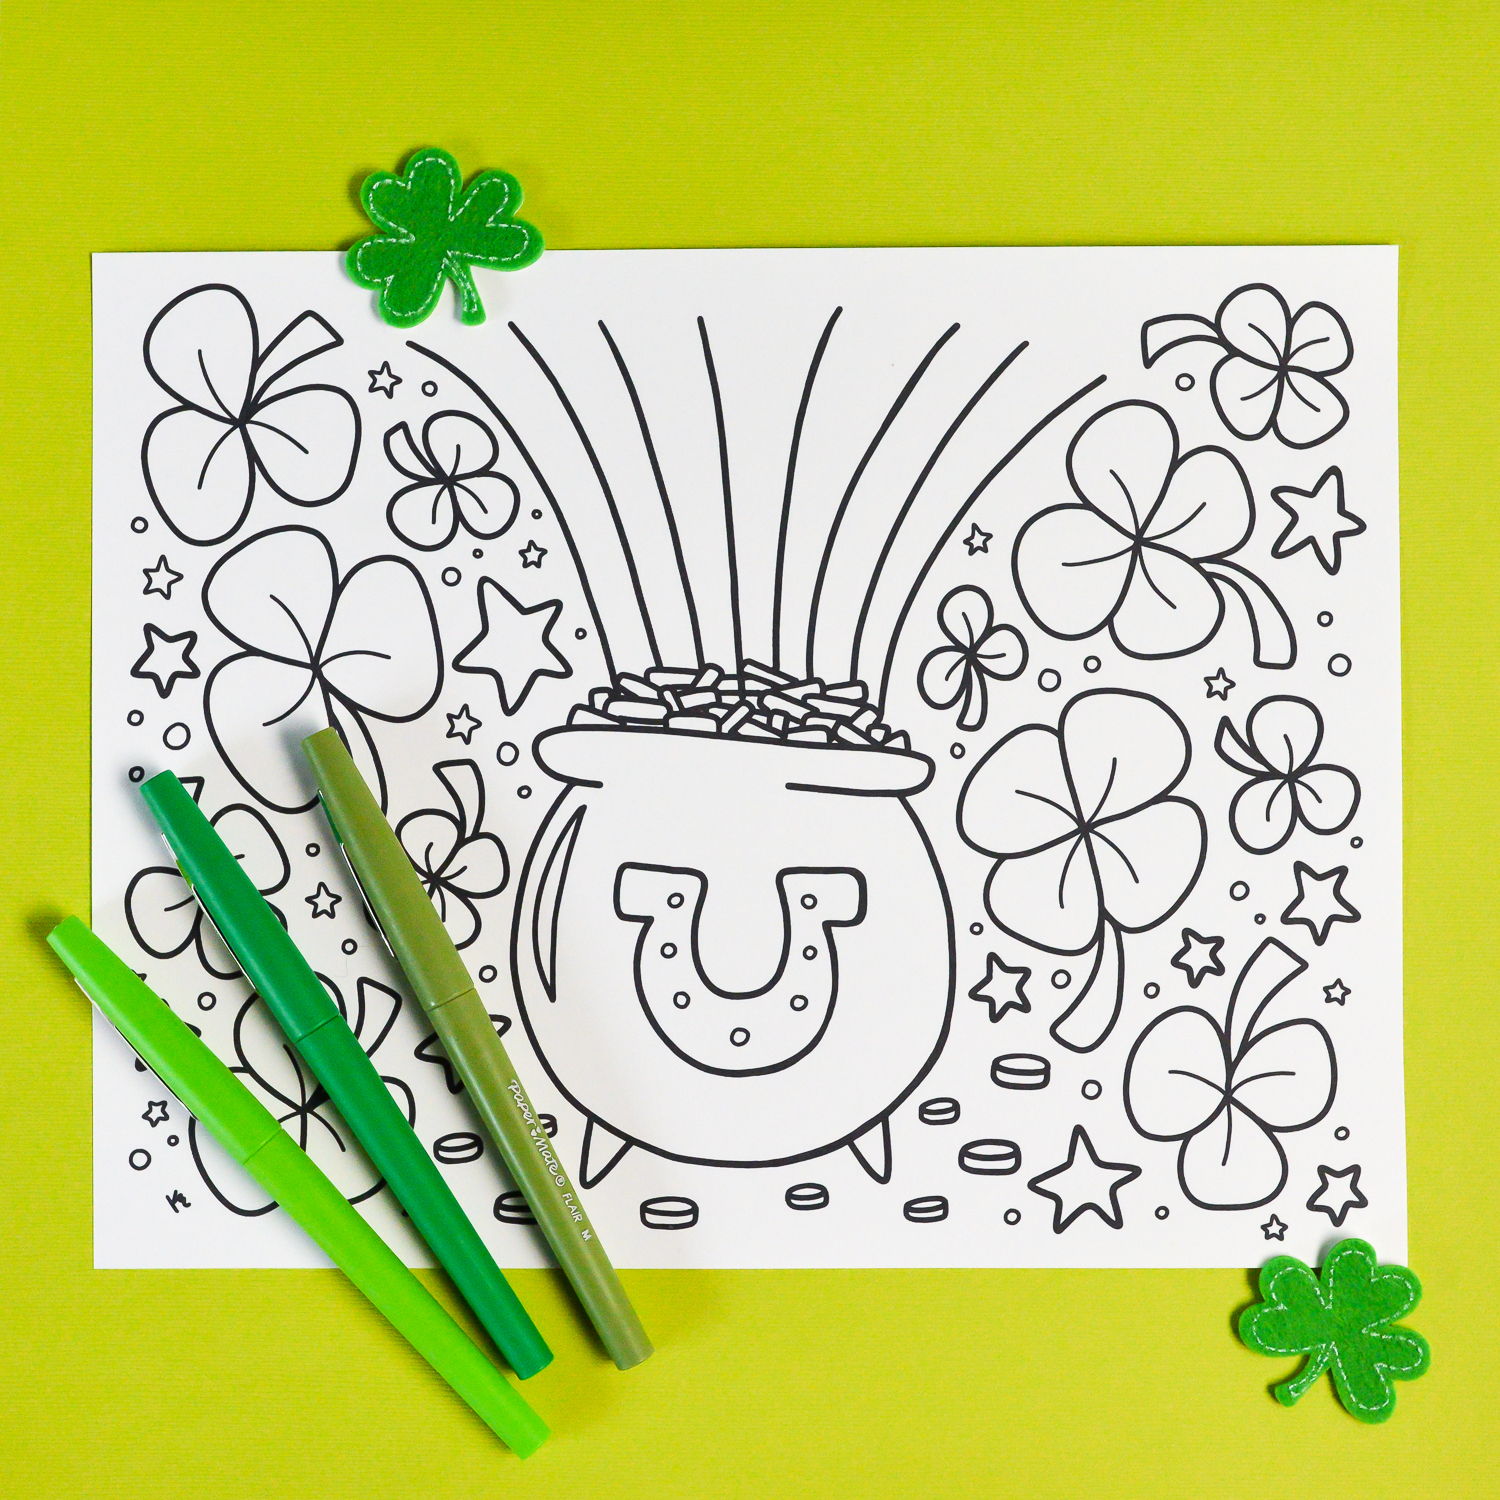 Free Printable St. Patrick's Day Coloring Page - Hey, Let's Make Stuff - Free Printable Saint Patrick Coloring Pages